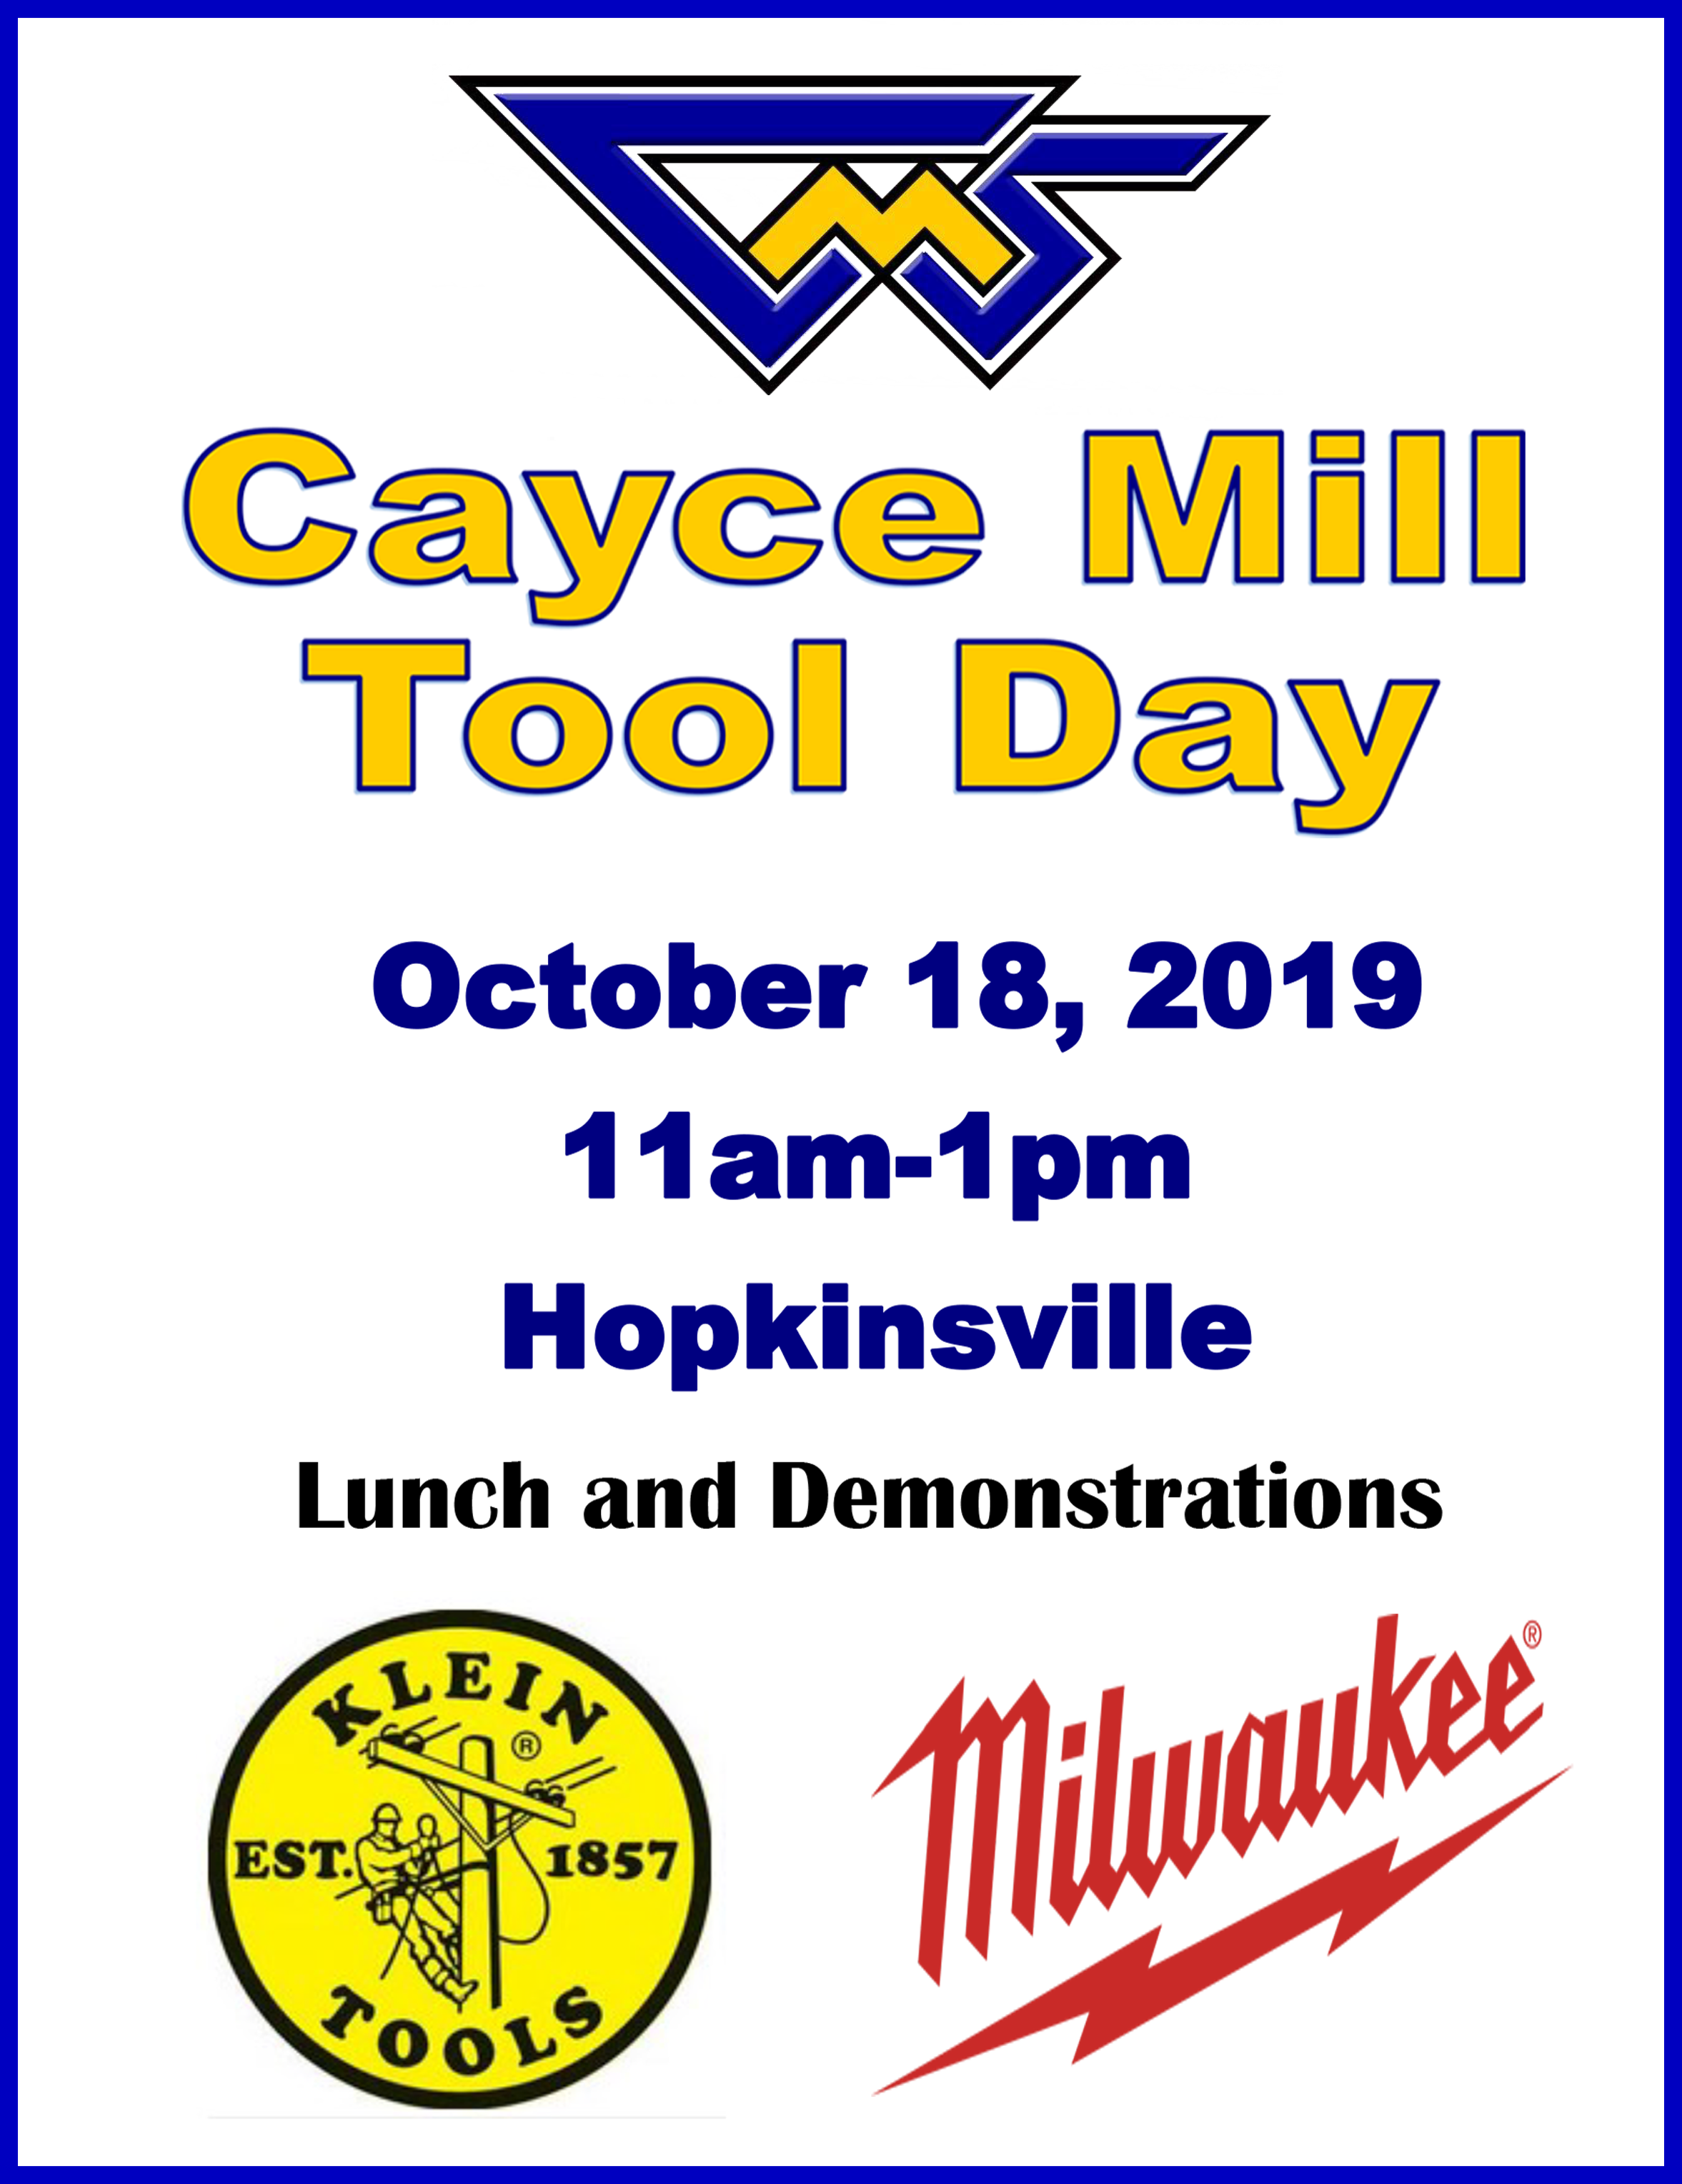 Cayce Mill Tool Day